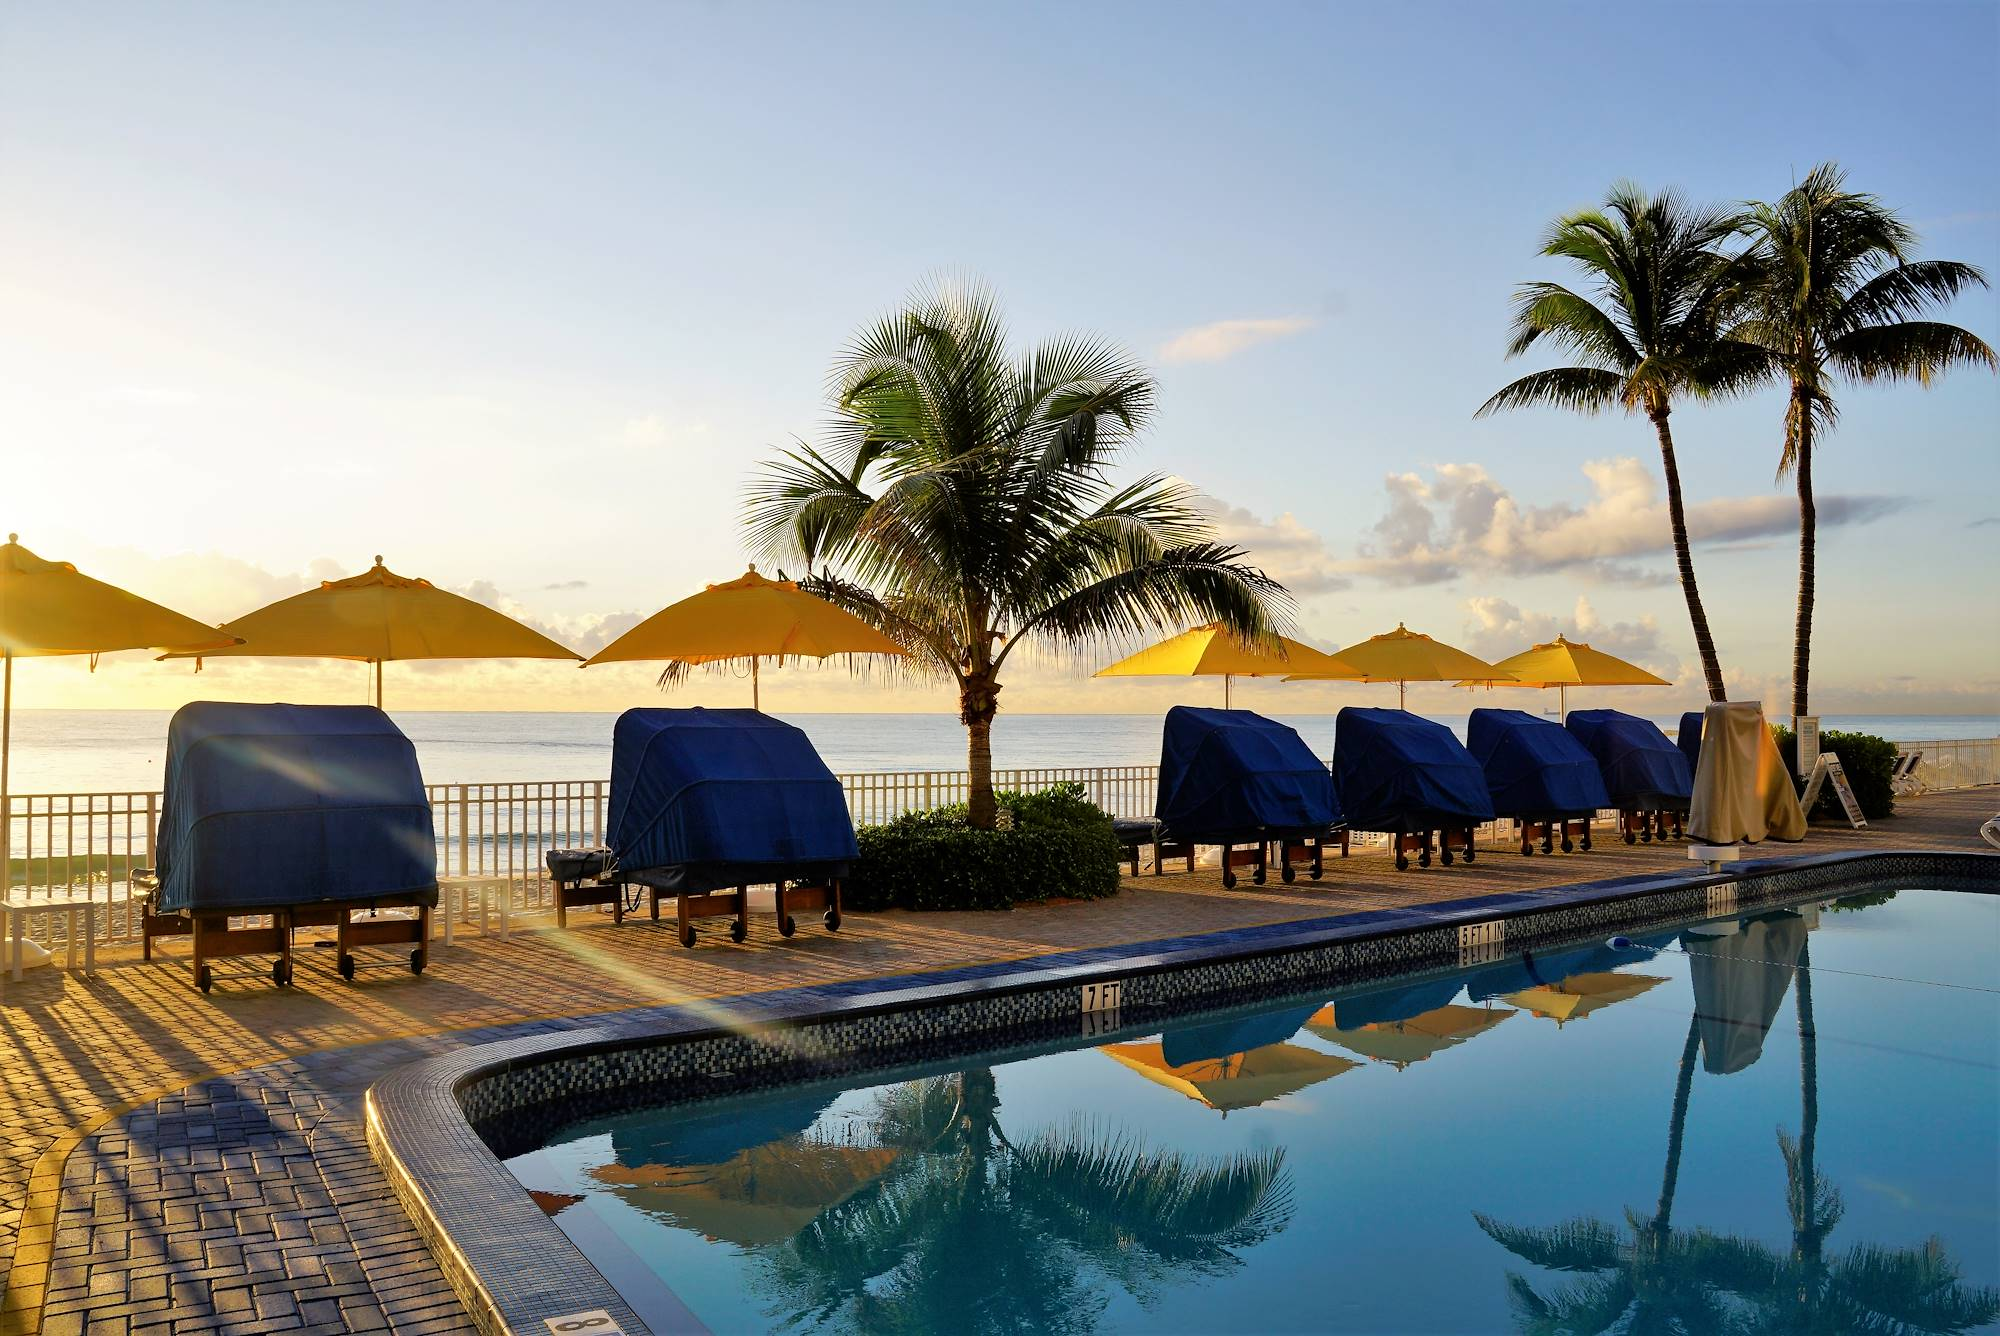 Sun bathing area by the pool at our Ft. Lauderdale Hotel